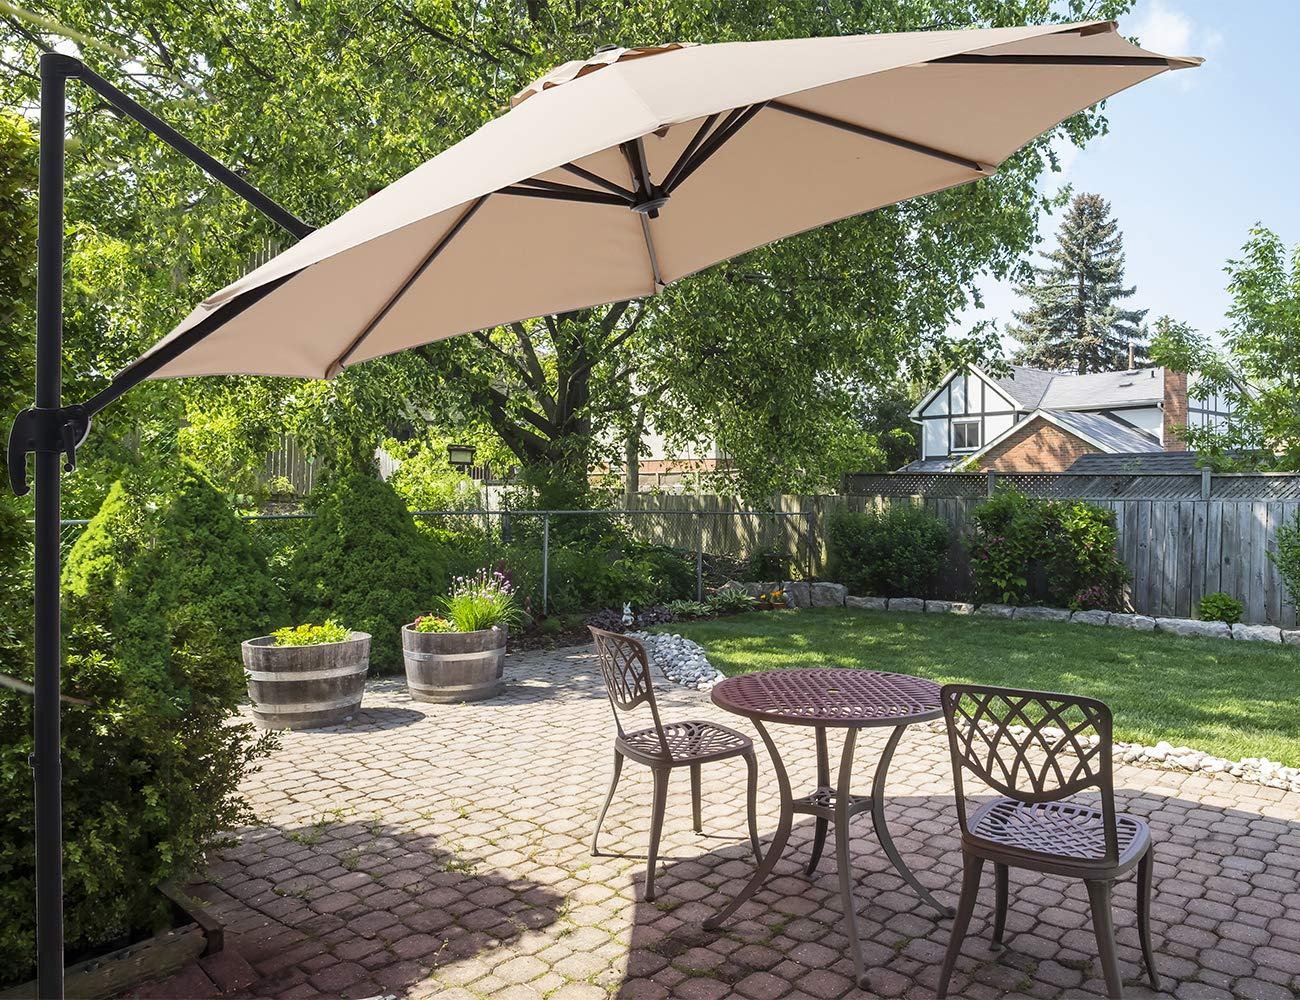 SUPERJARE 10 FT Offset Hanging Umbrella, Outdoor Patio Cantilever with Tilt Canopy, Crank Lift & 5 Lock Positions, 360° Rotation - Beige by SUPERJARE (Image #2)